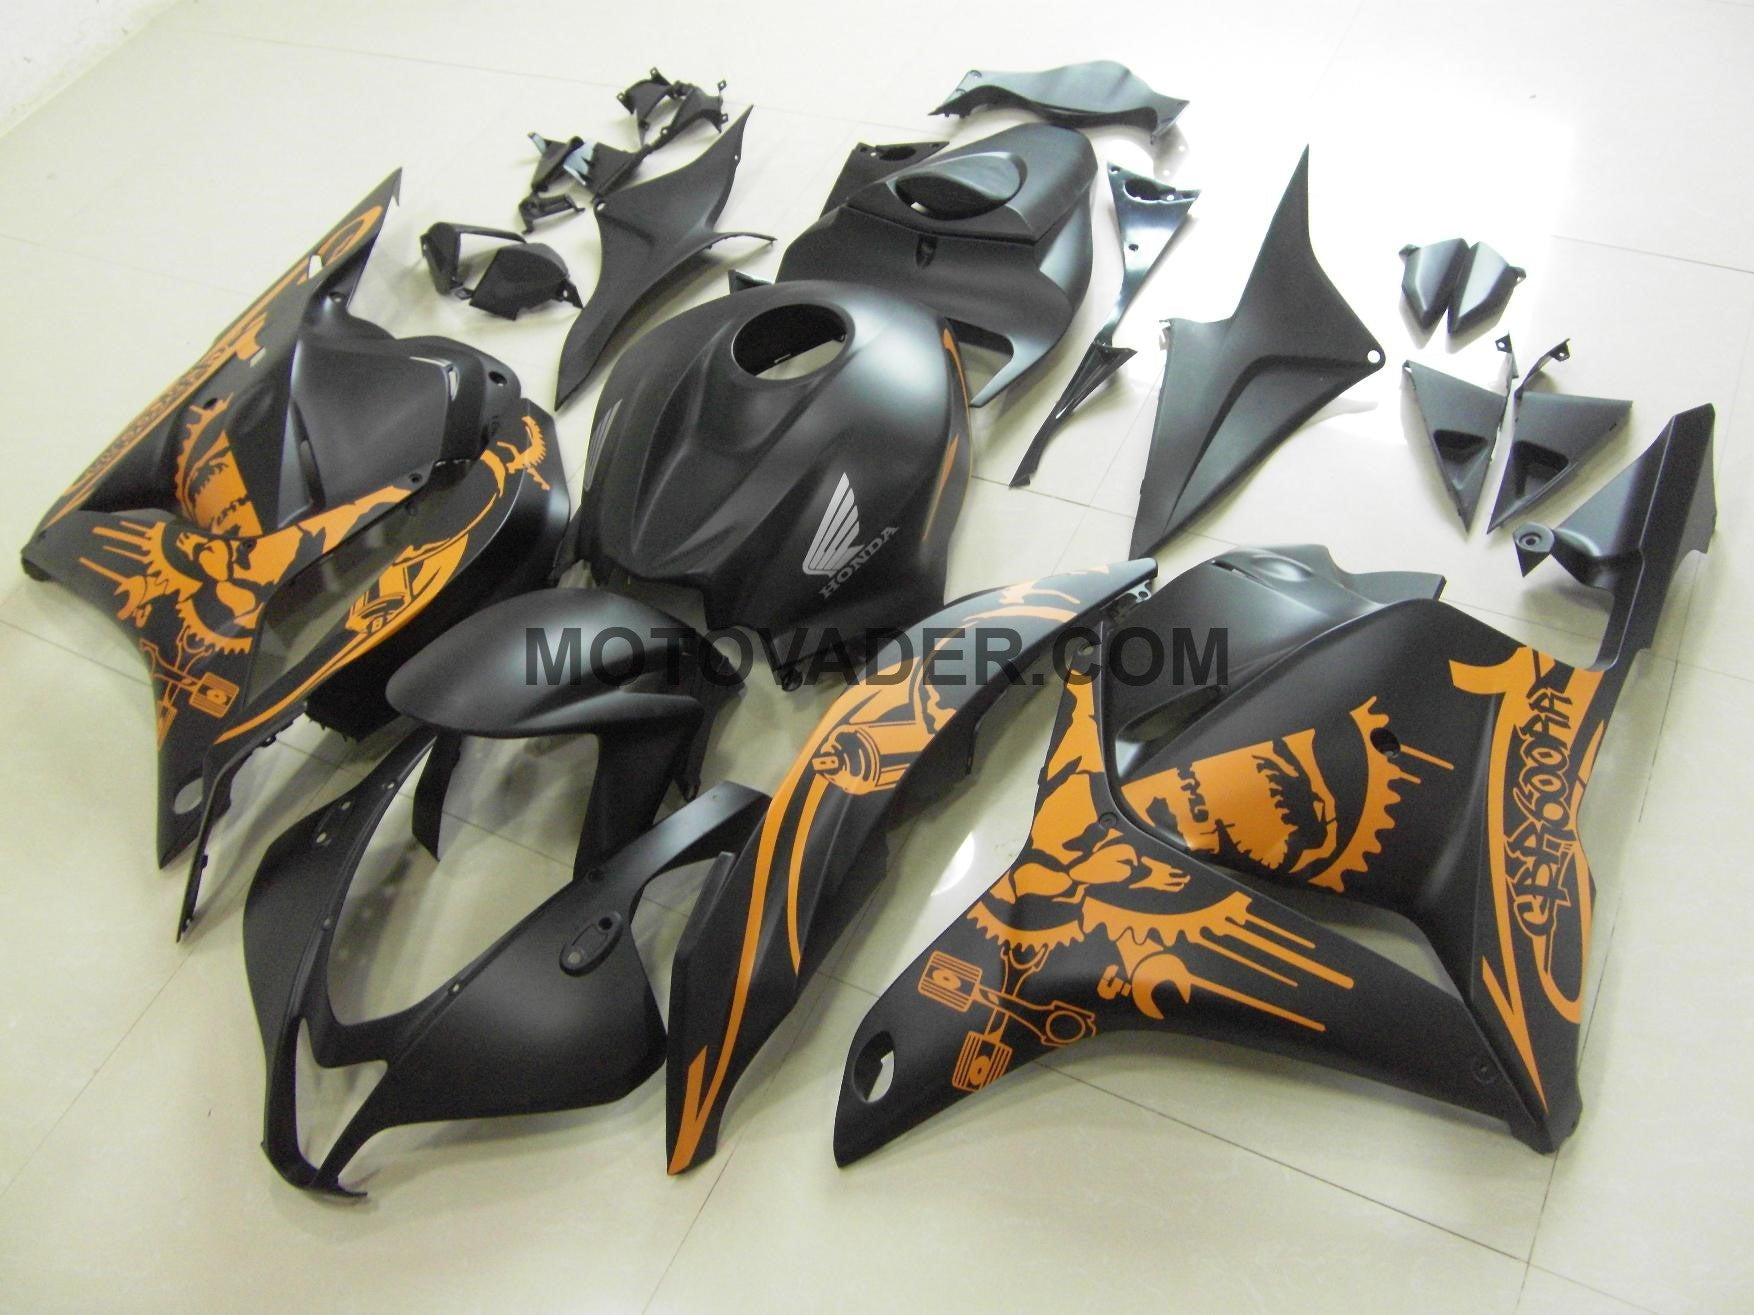 Honda CBR 600RR 2009-2012 Matt Black & Orange Sticker Fairing